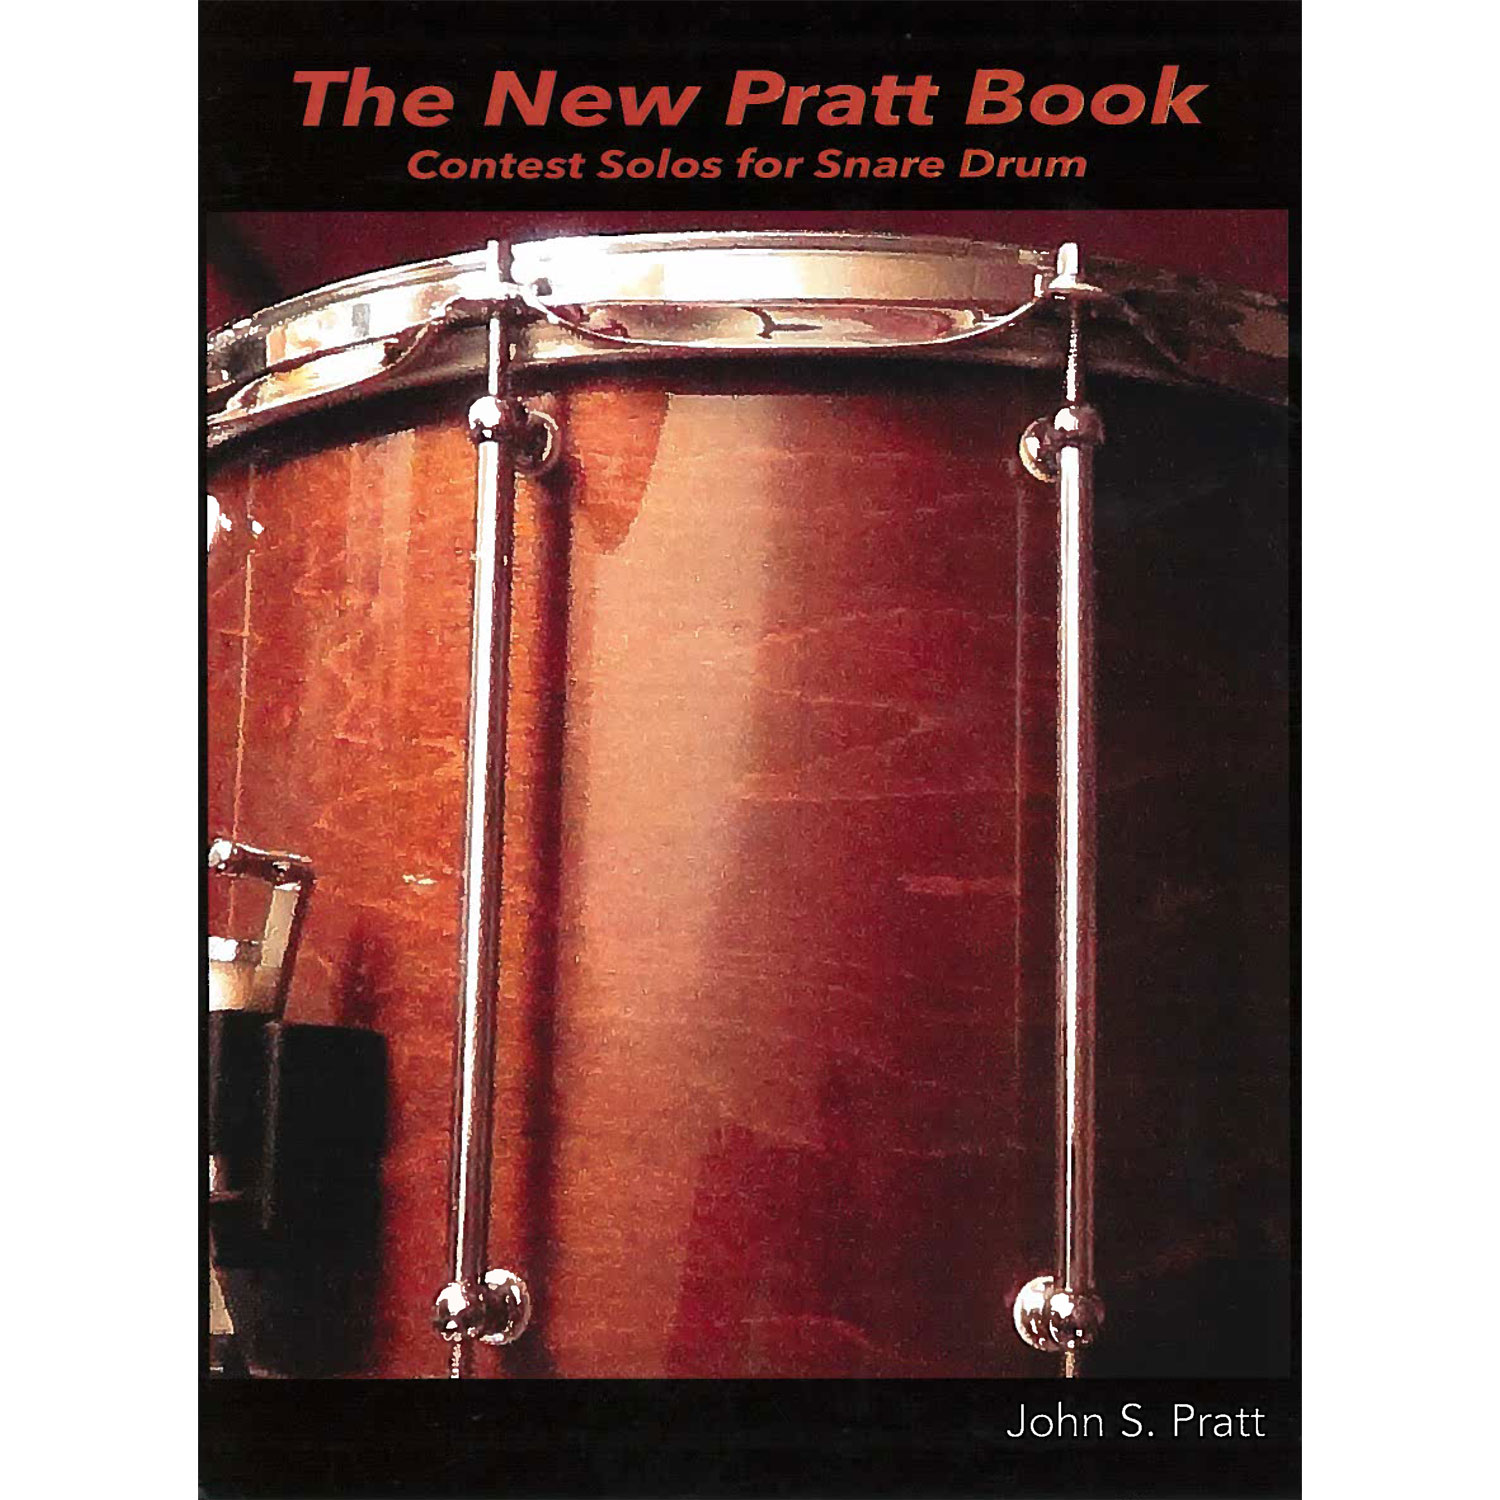 The New Pratt Book by John S. Pratt